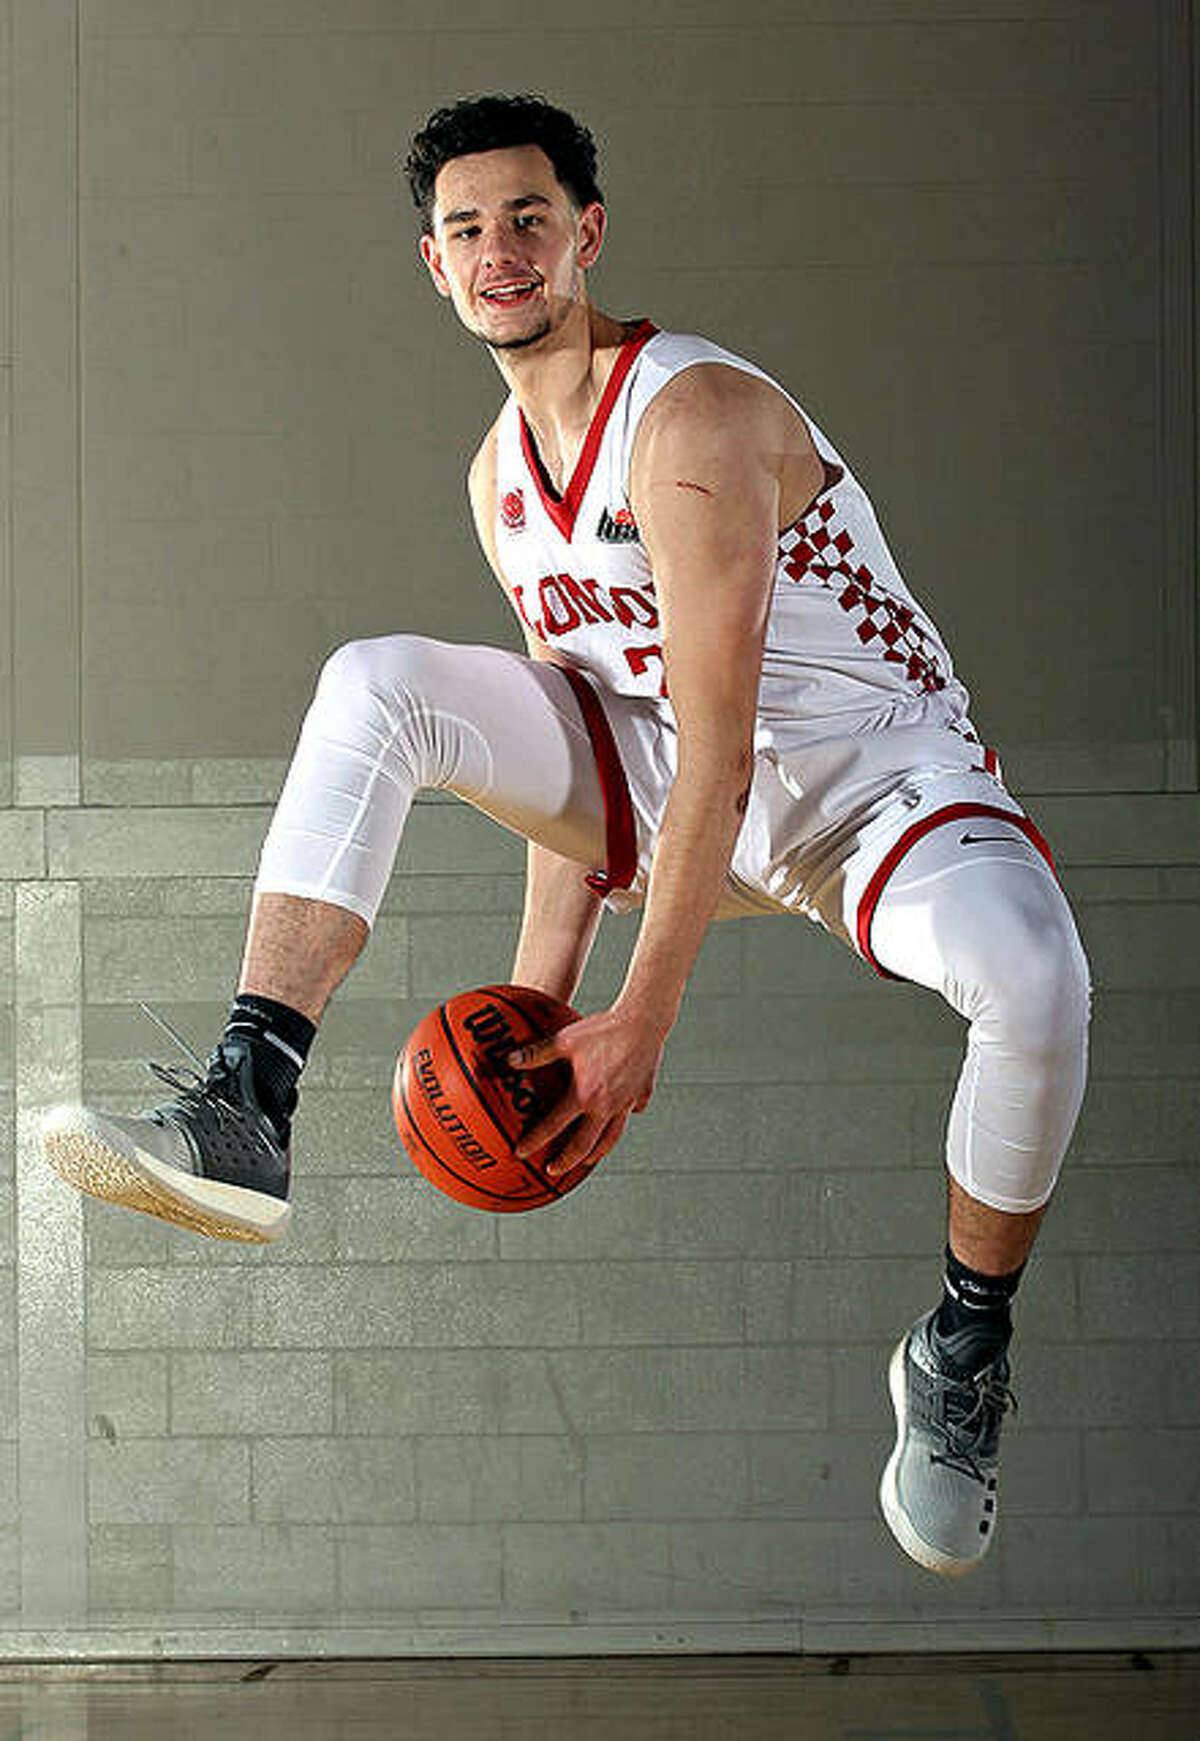 Michael Matas has joined the SIUE men's basketball team from the London Basketball Academy in Canada.